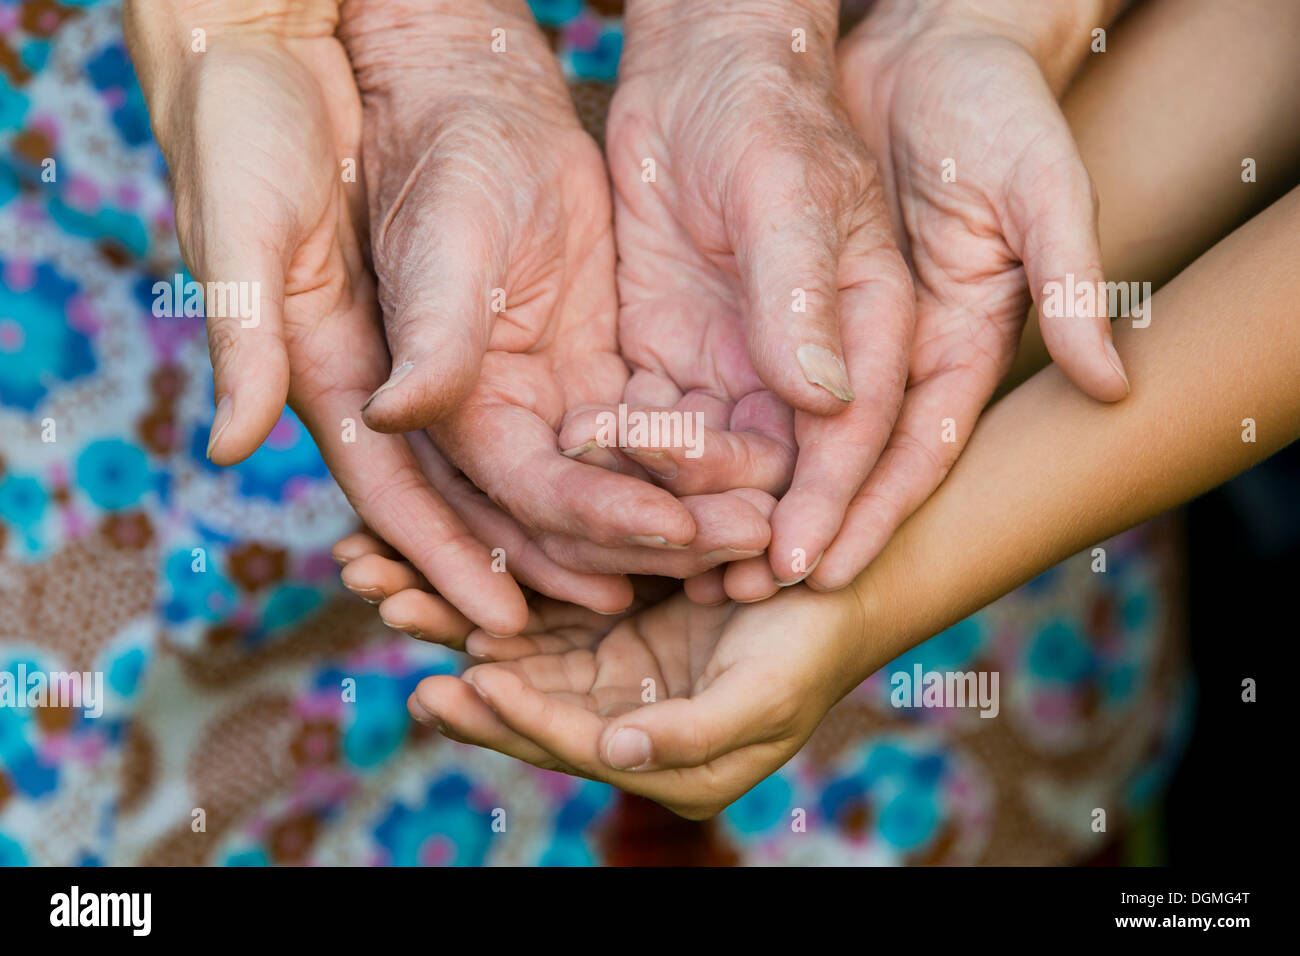 Hands of an adult, an elderly woman and a child - Stock Image